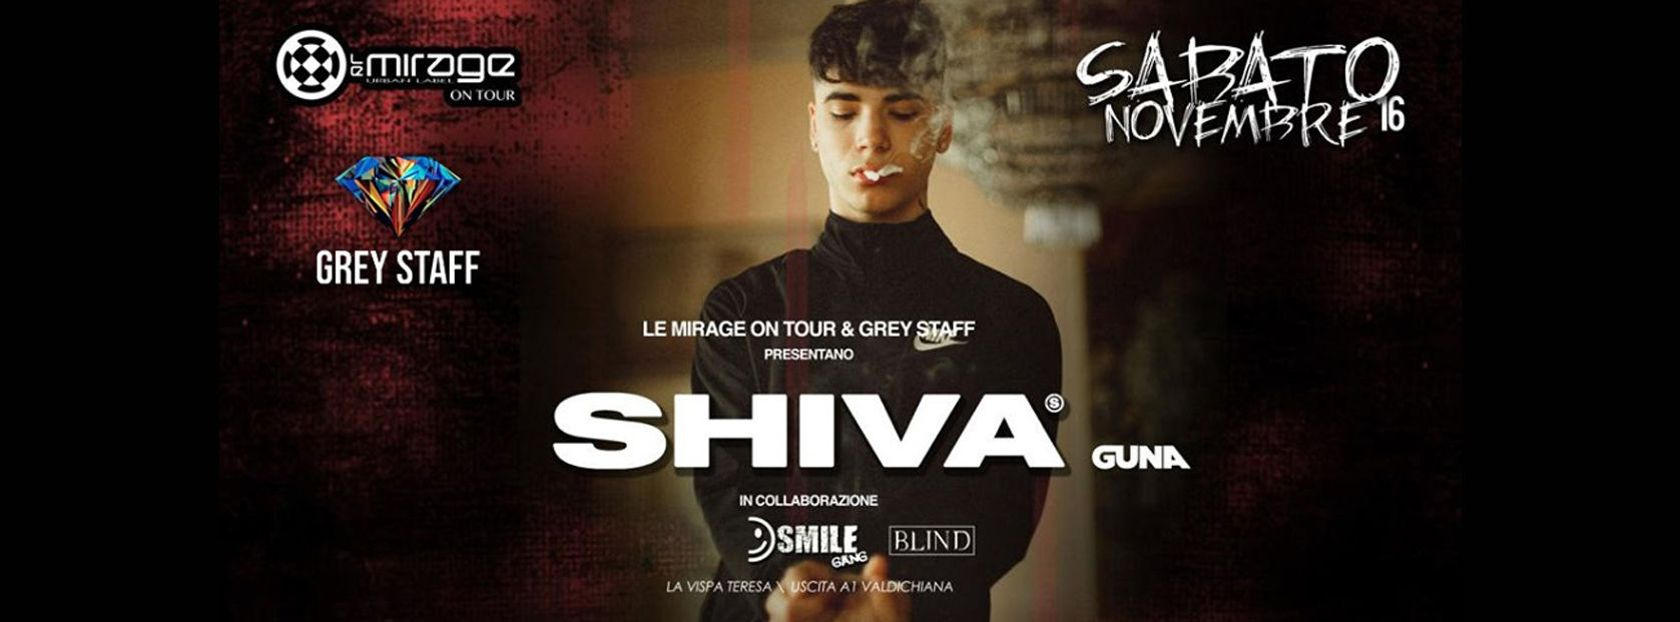 Le Mirage - Special guest Shiva